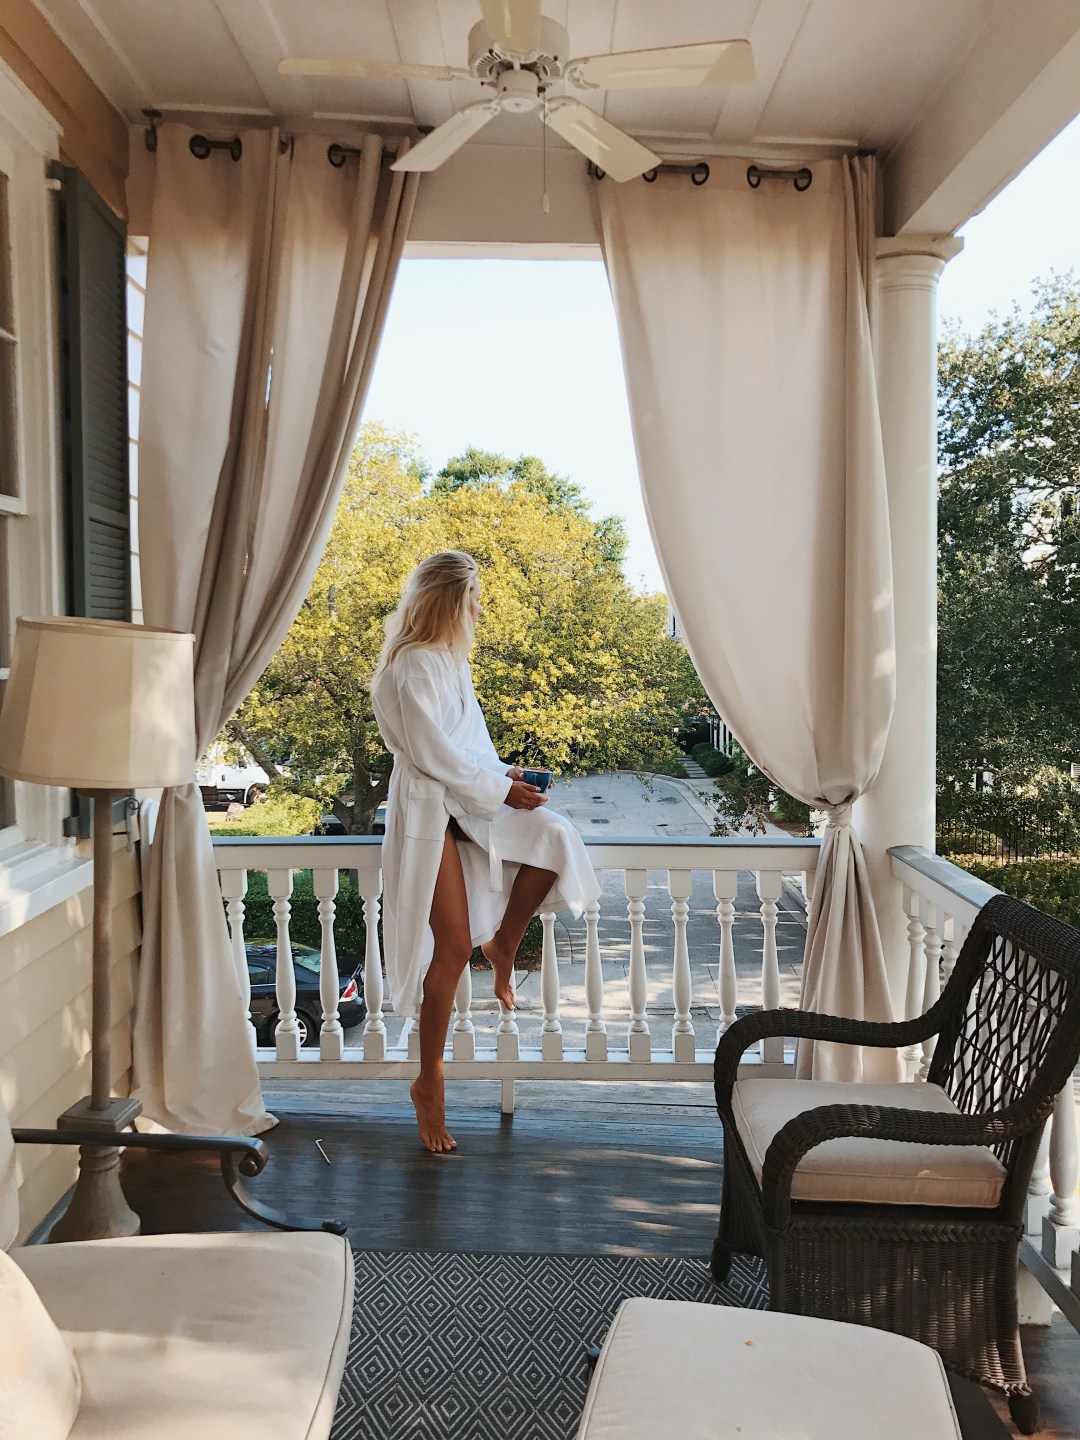 3 day staycation guide to Charleston